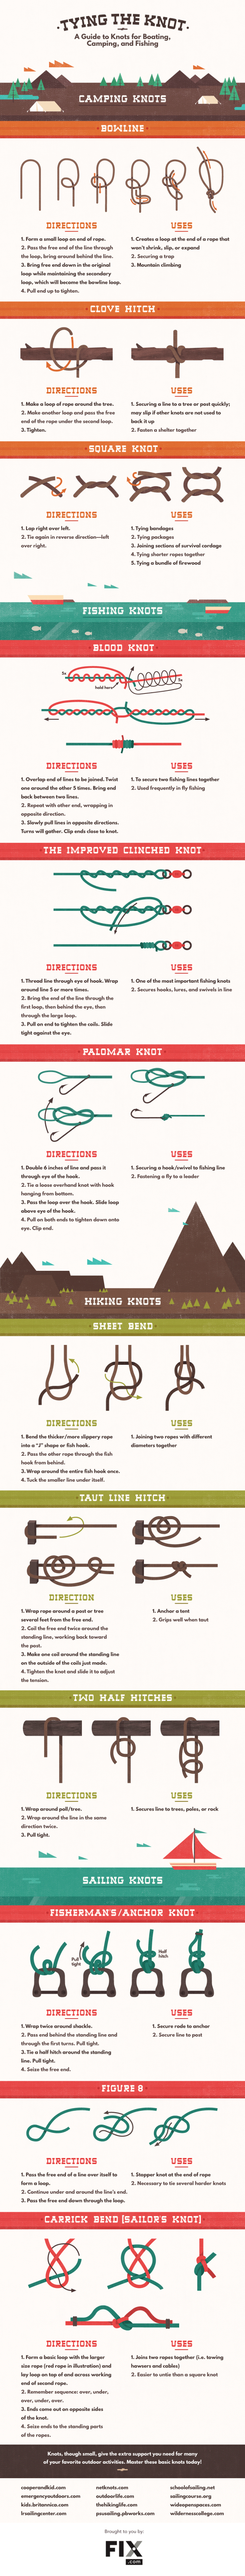 Tying the Knot: A Guide to Tying Knots for Every Occasion